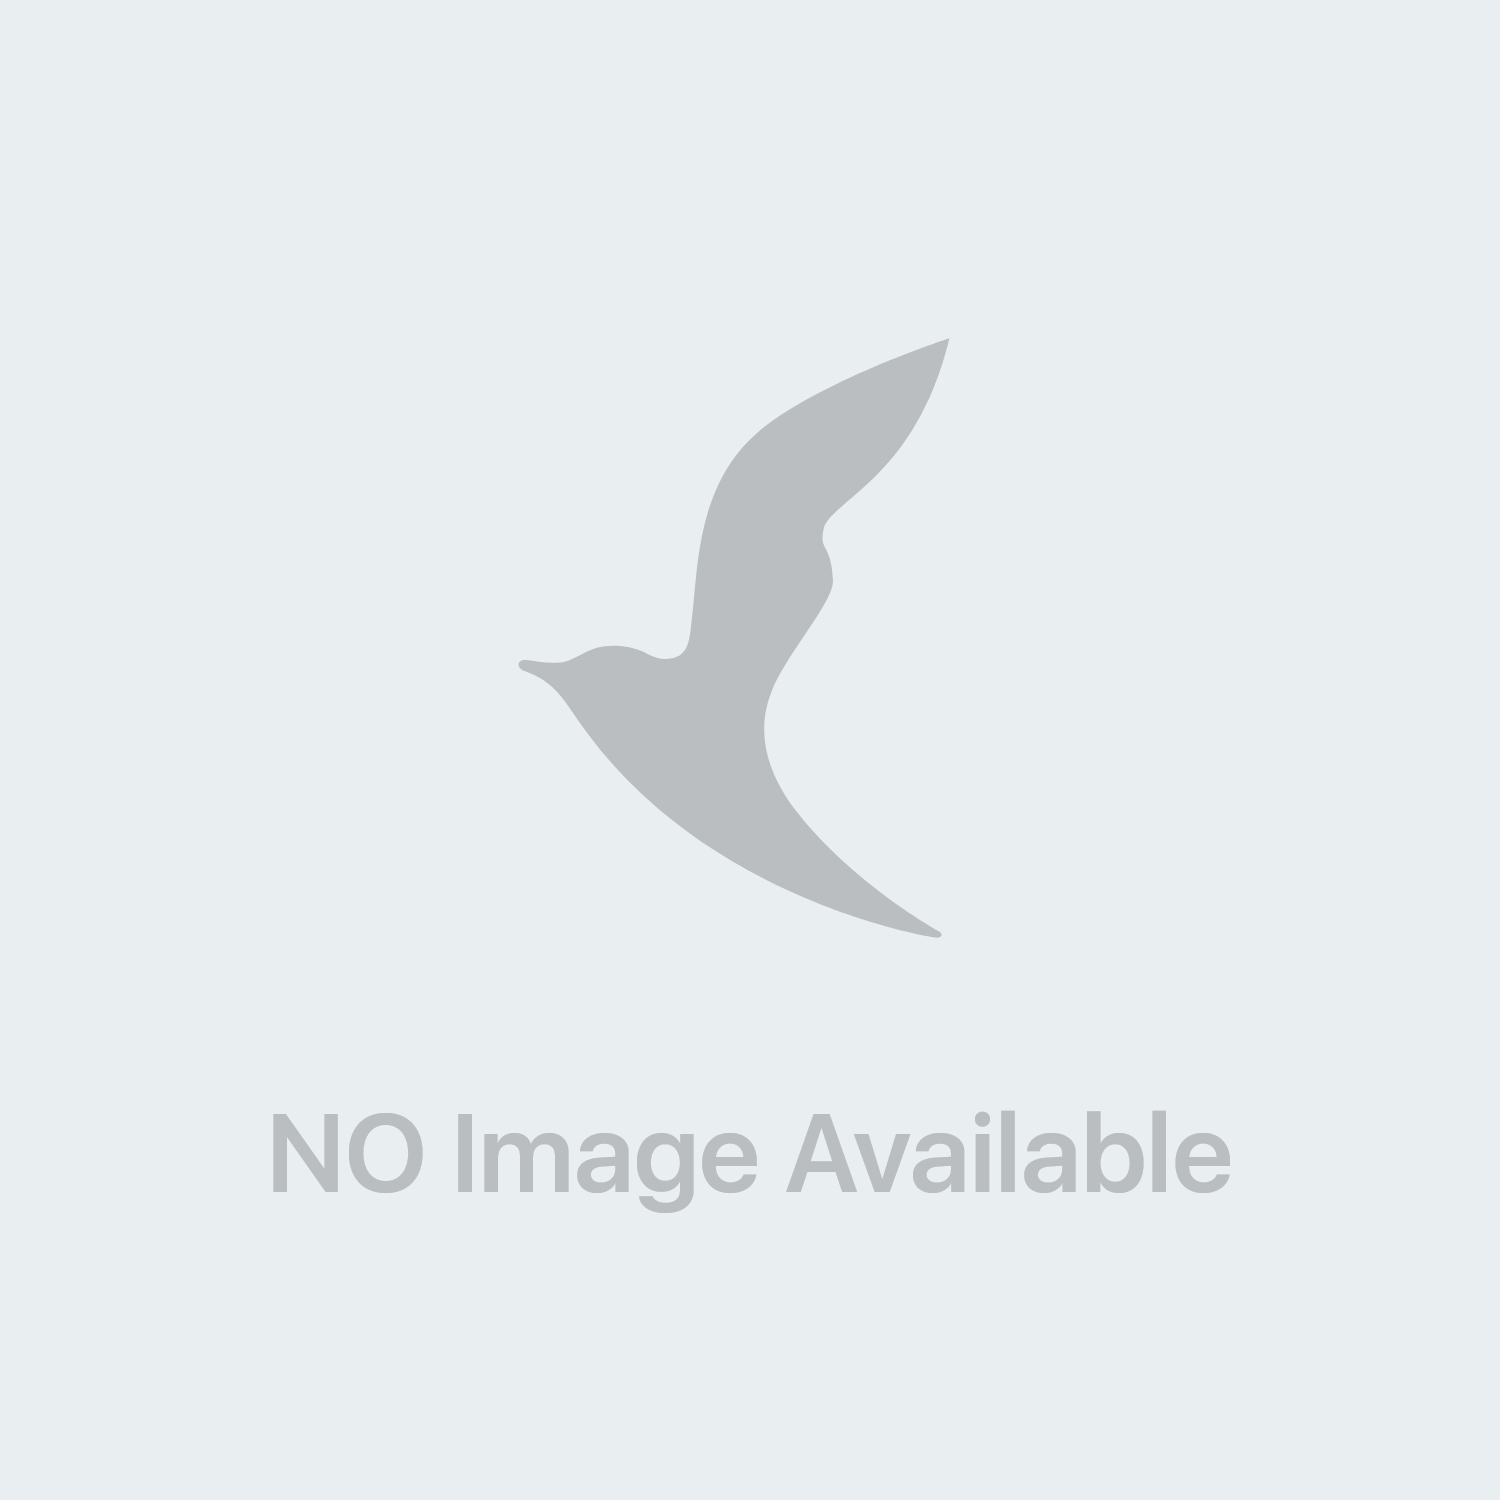 La Roche Posay Respectissime Mascara Waterproof Nero 7.6 ml